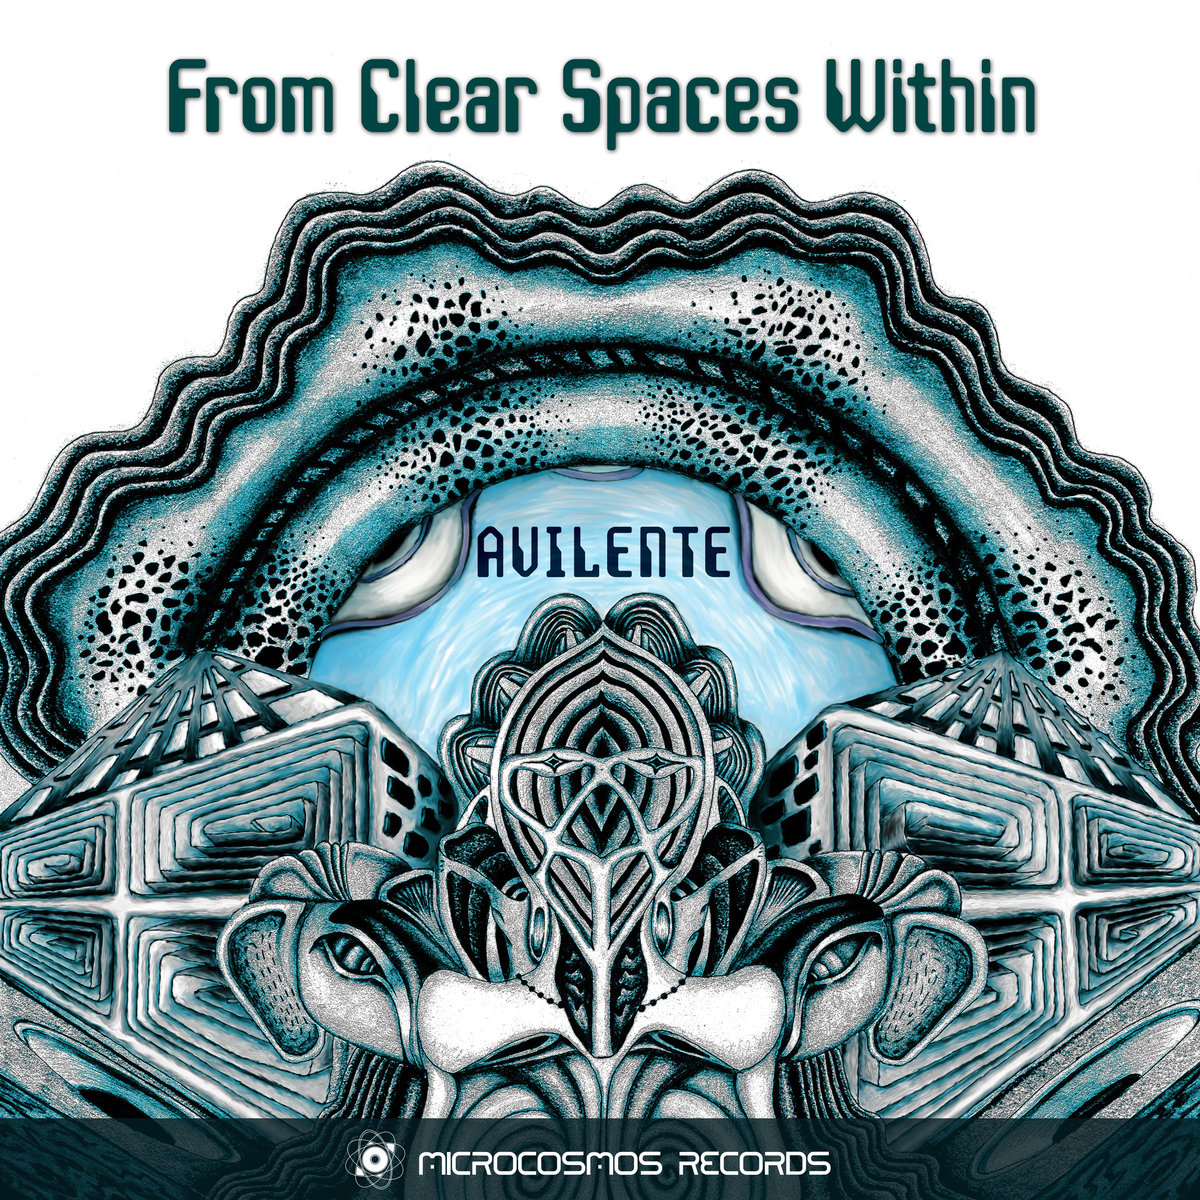 Avilente - This Beautiful Universe @ 'From Clear Spaces Within' album (ambient, chill-out)